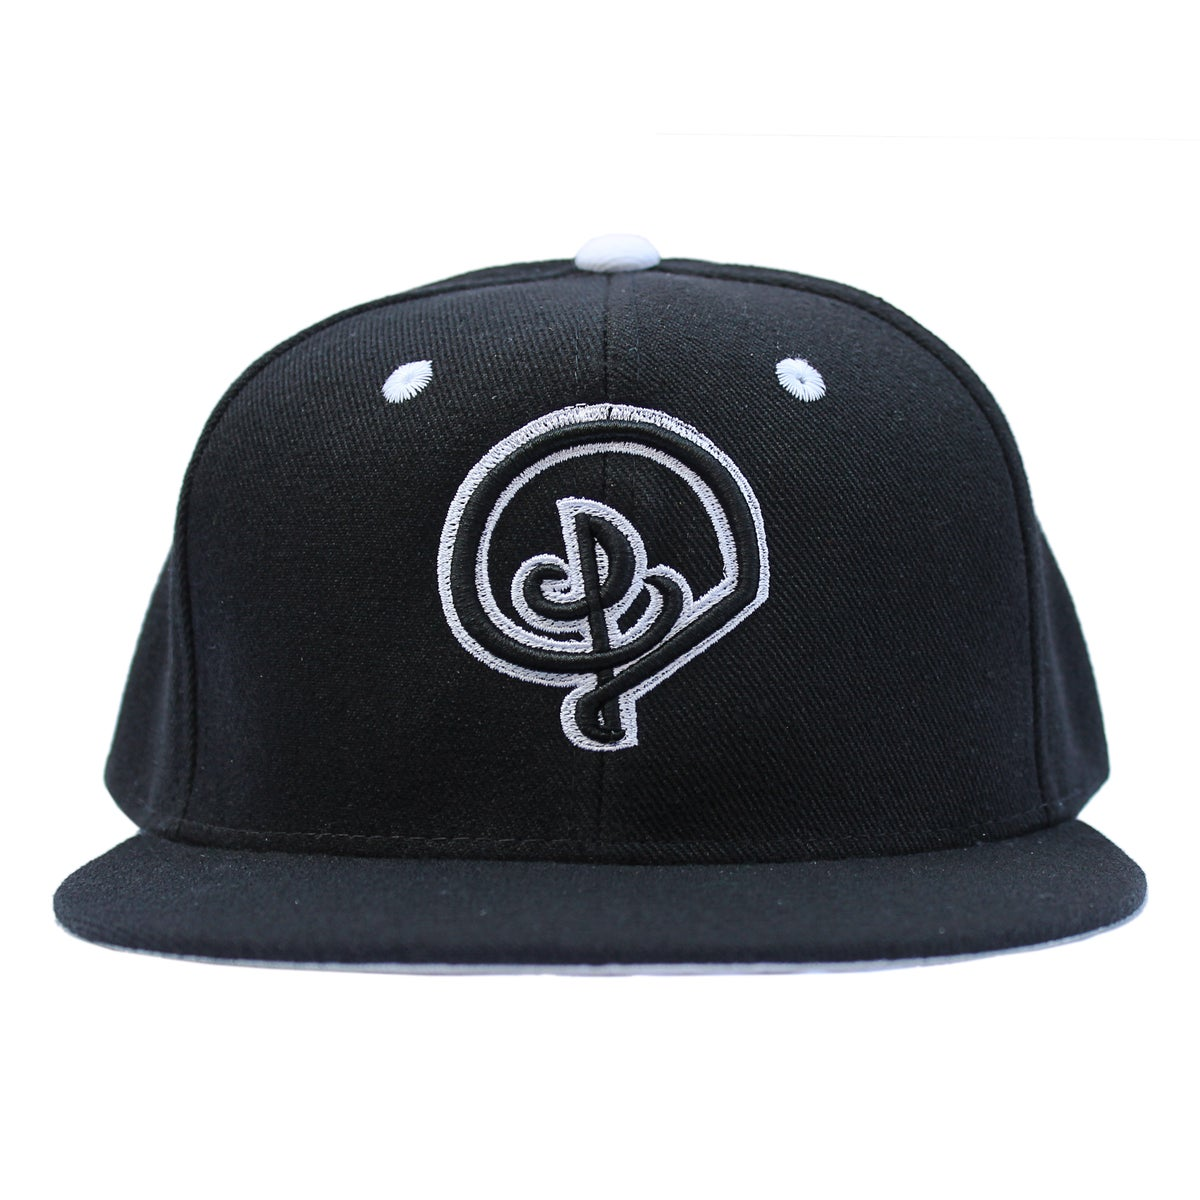 Image of BLACK W/ WHITE D LOGO SNAPBACK